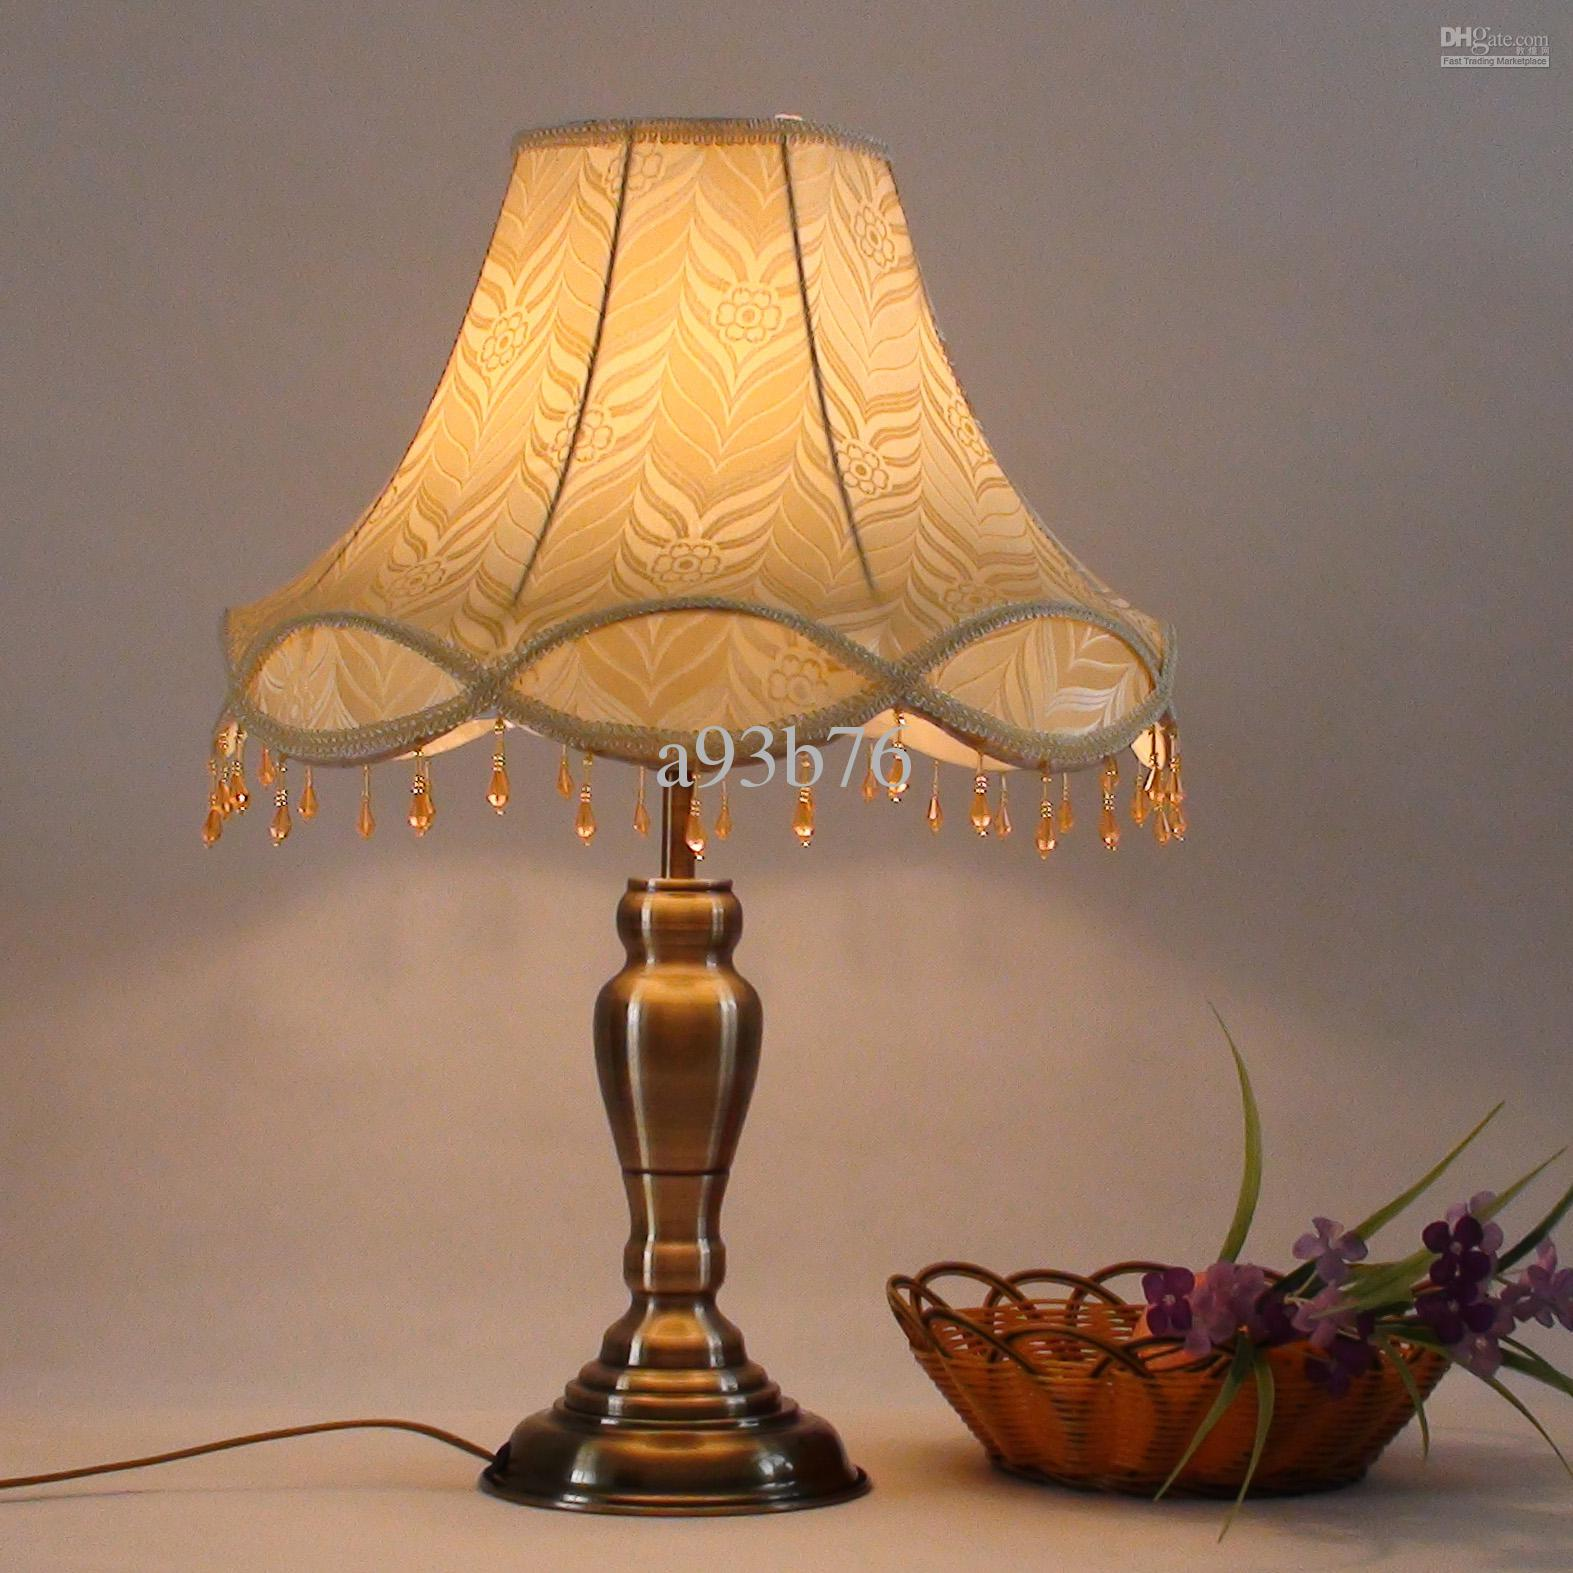 antique lamps fashion antique table lamp ofhead lighting guest room lamp lighting lamps URPDMMG